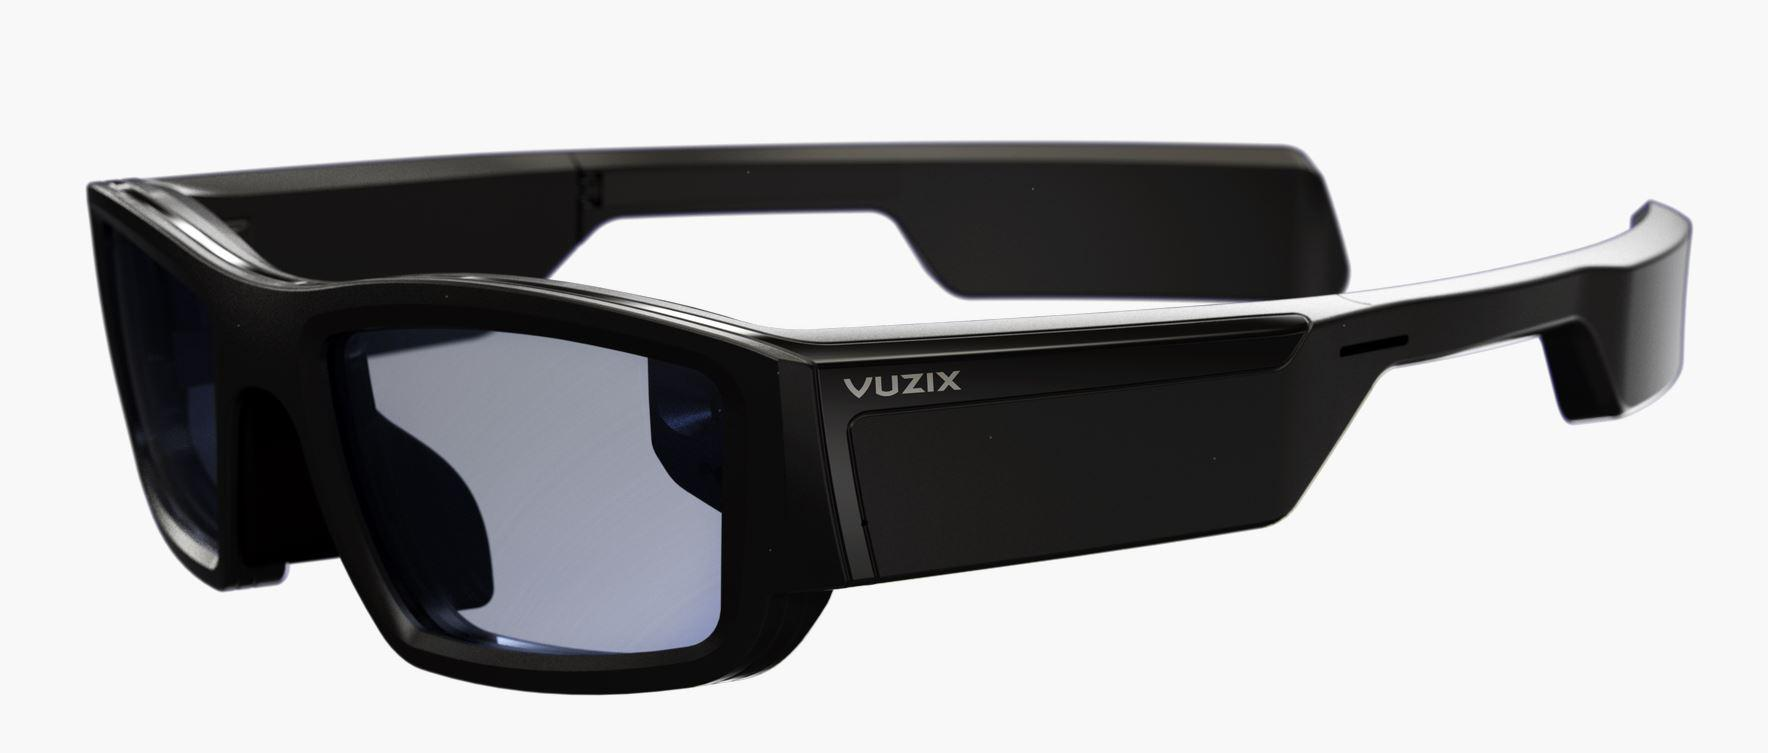 The $1,000 Vuzix Blade is equipped with Amazon's Alexa voice assistant.